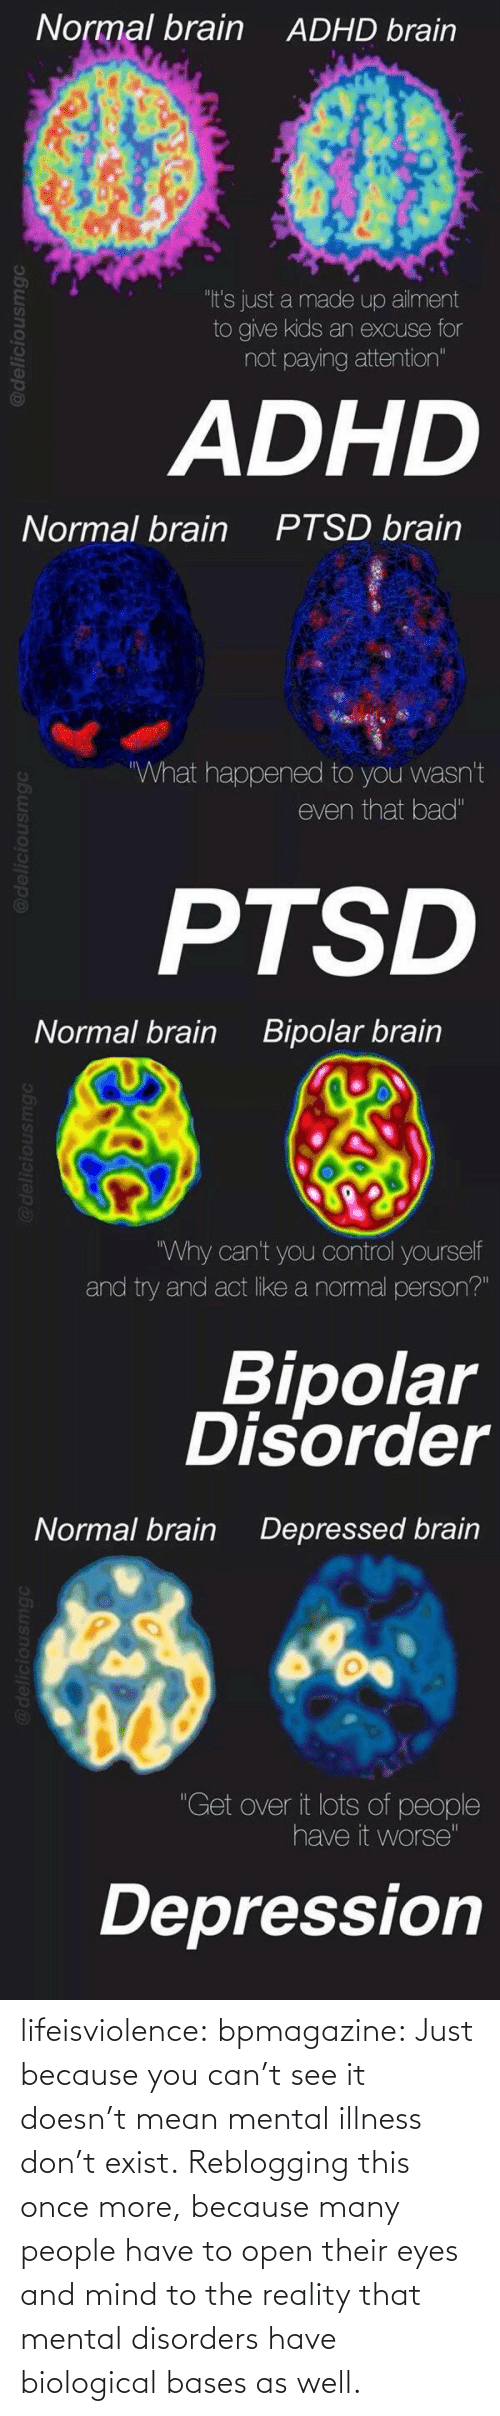 """bipolar disorder: Normal brain  ADHD brain  """"It's just a made up ailment  to give kids an excuse for  not paying attention""""  ADHD   Normal brain  PTSD brain  What happened to you wasn't  even that bad""""  PTSD   Normal brain  Bipolar brain  Why can't you control yourself  and try and act like a normal person?""""  Bipolar  Disorder   Normal brain  Depressed brain  """"Get over it lots of people  have it worse""""  Depression lifeisviolence:  bpmagazine:   Just because you can't see it doesn't mean mental illness don't exist.   Reblogging this once more, because many people have to open their eyes and mind to the reality that mental disorders have biological bases as well."""